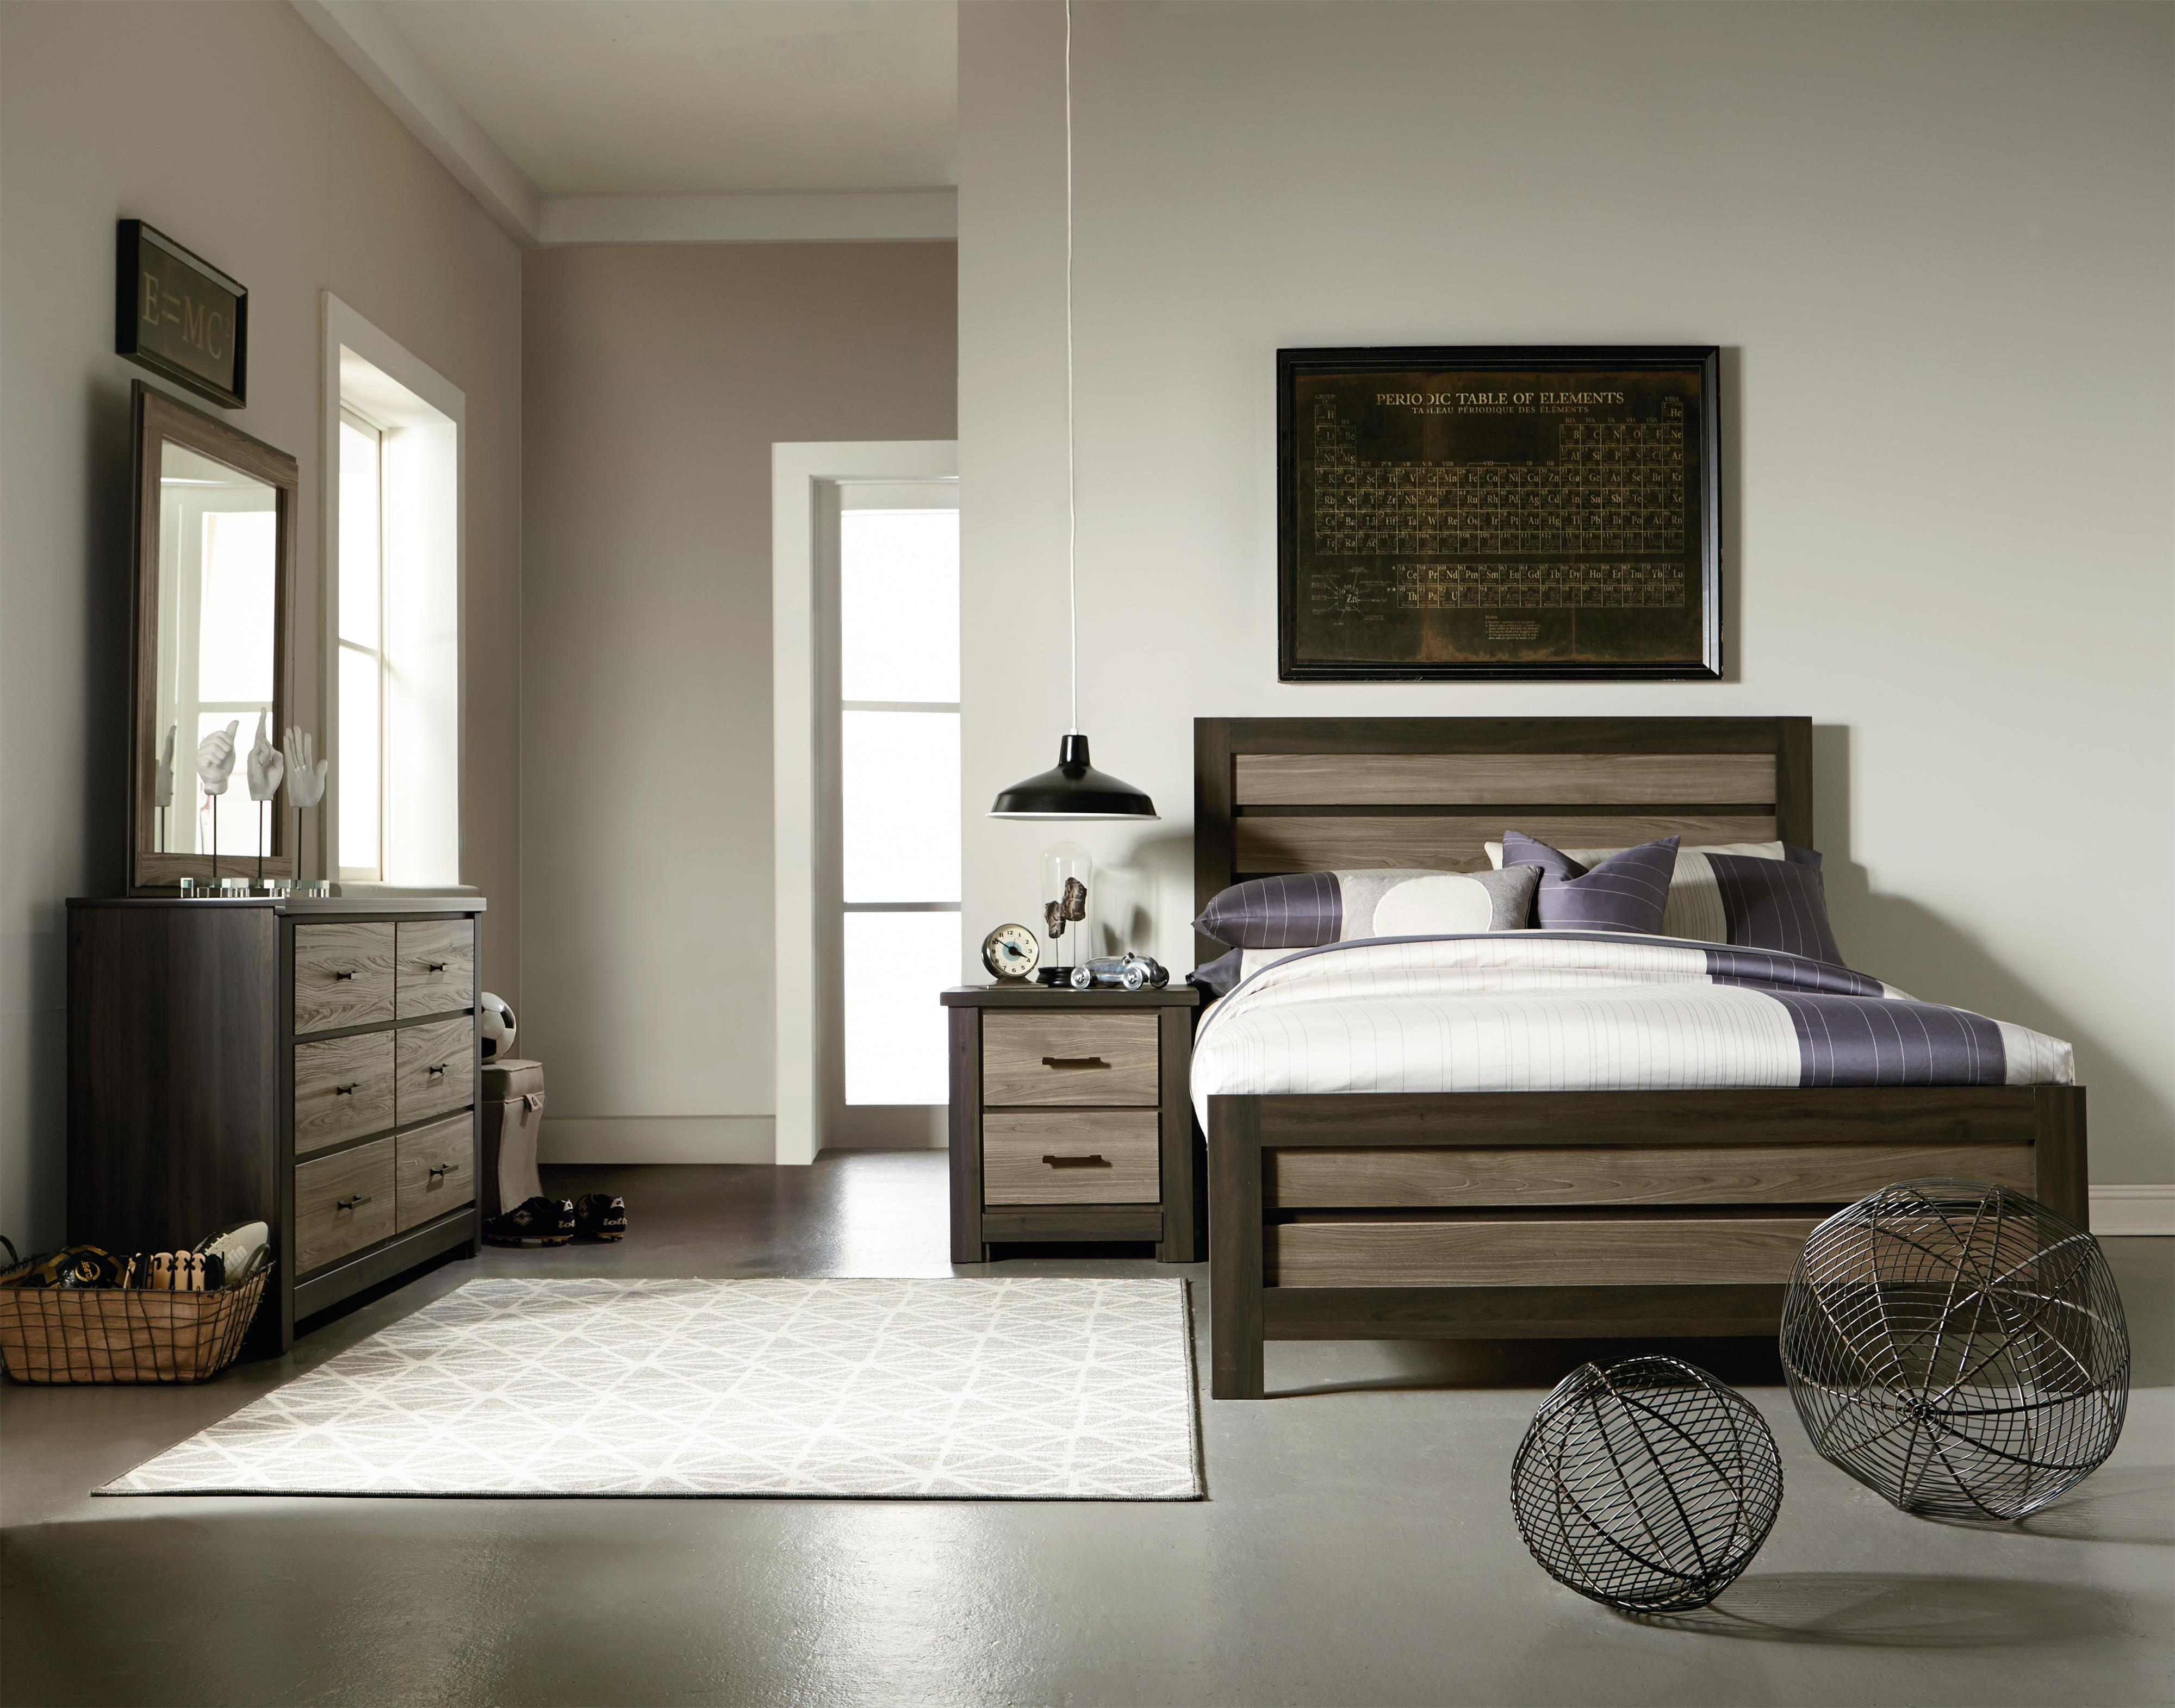 Standard Furniture Oakland Full Bedroom Group - Item Number: 69700 F Bedroom Group 3